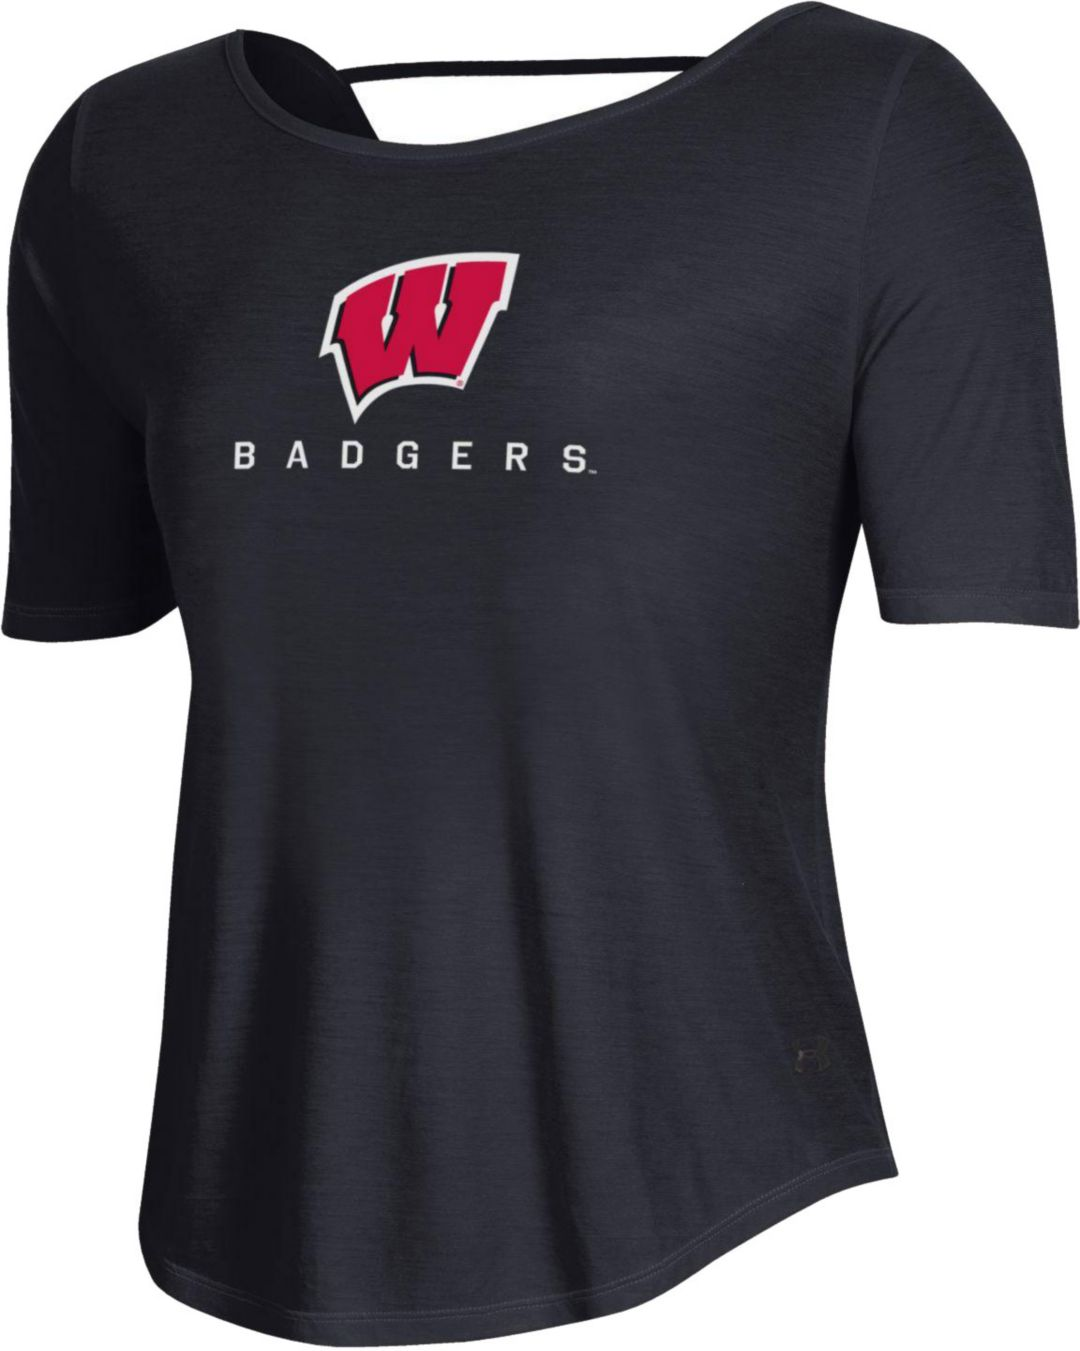 1f38fae4 Under Armour Women's Wisconsin Badgers Lux Short Sleeve Performance Black  T-Shirt